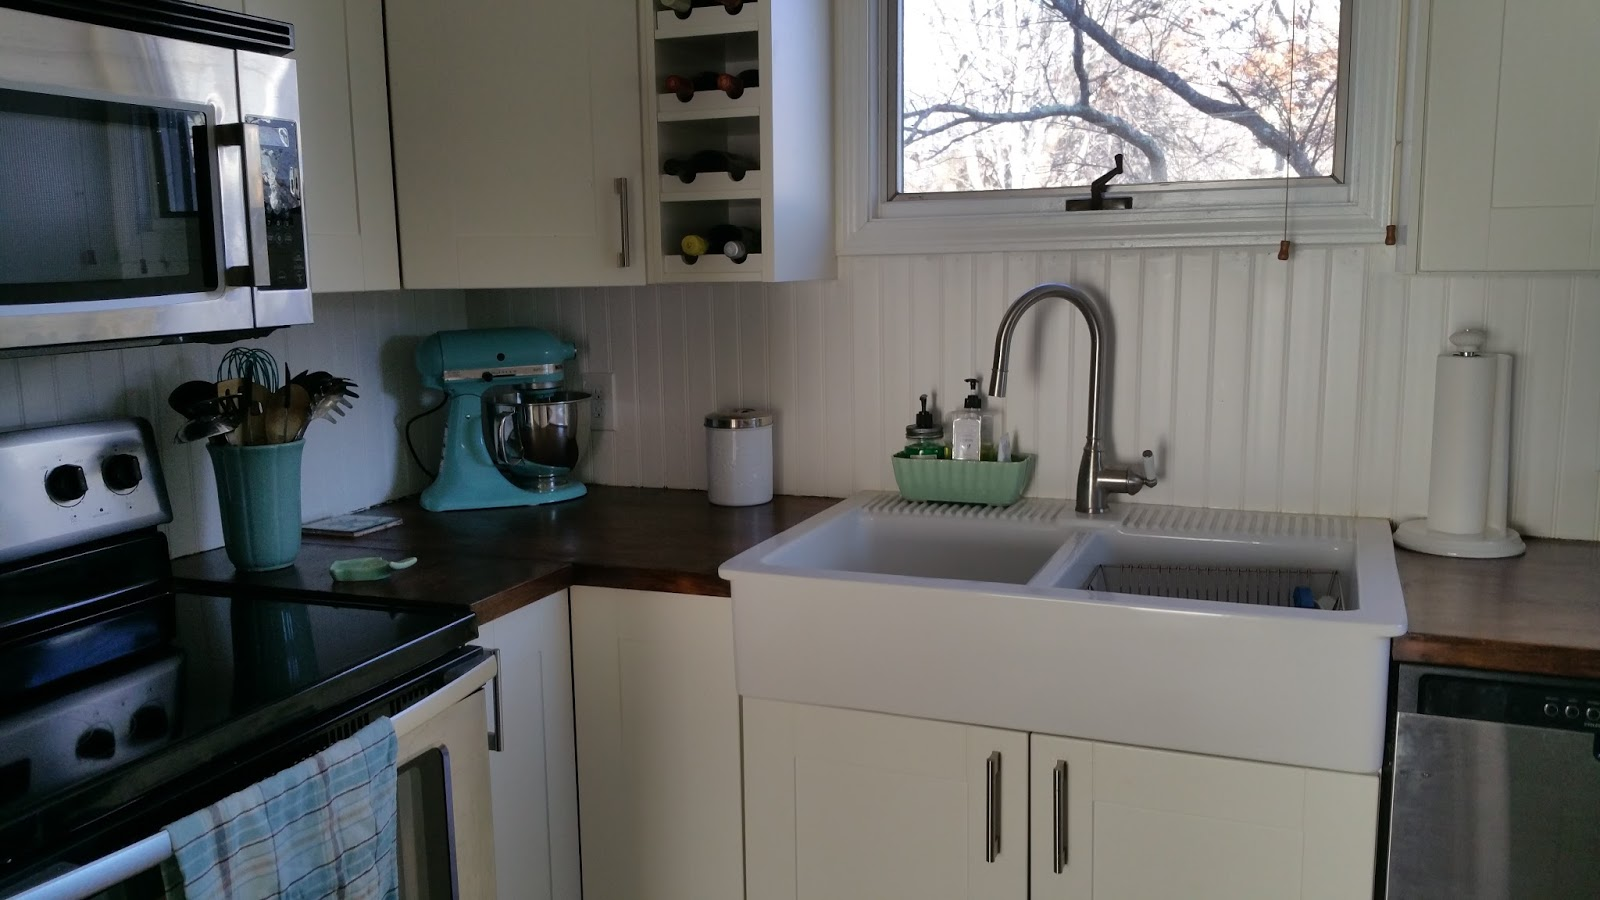 Best Finish For Butcher Block Countertop: Salt Marsh Cottage: How To Finish Butcher Block